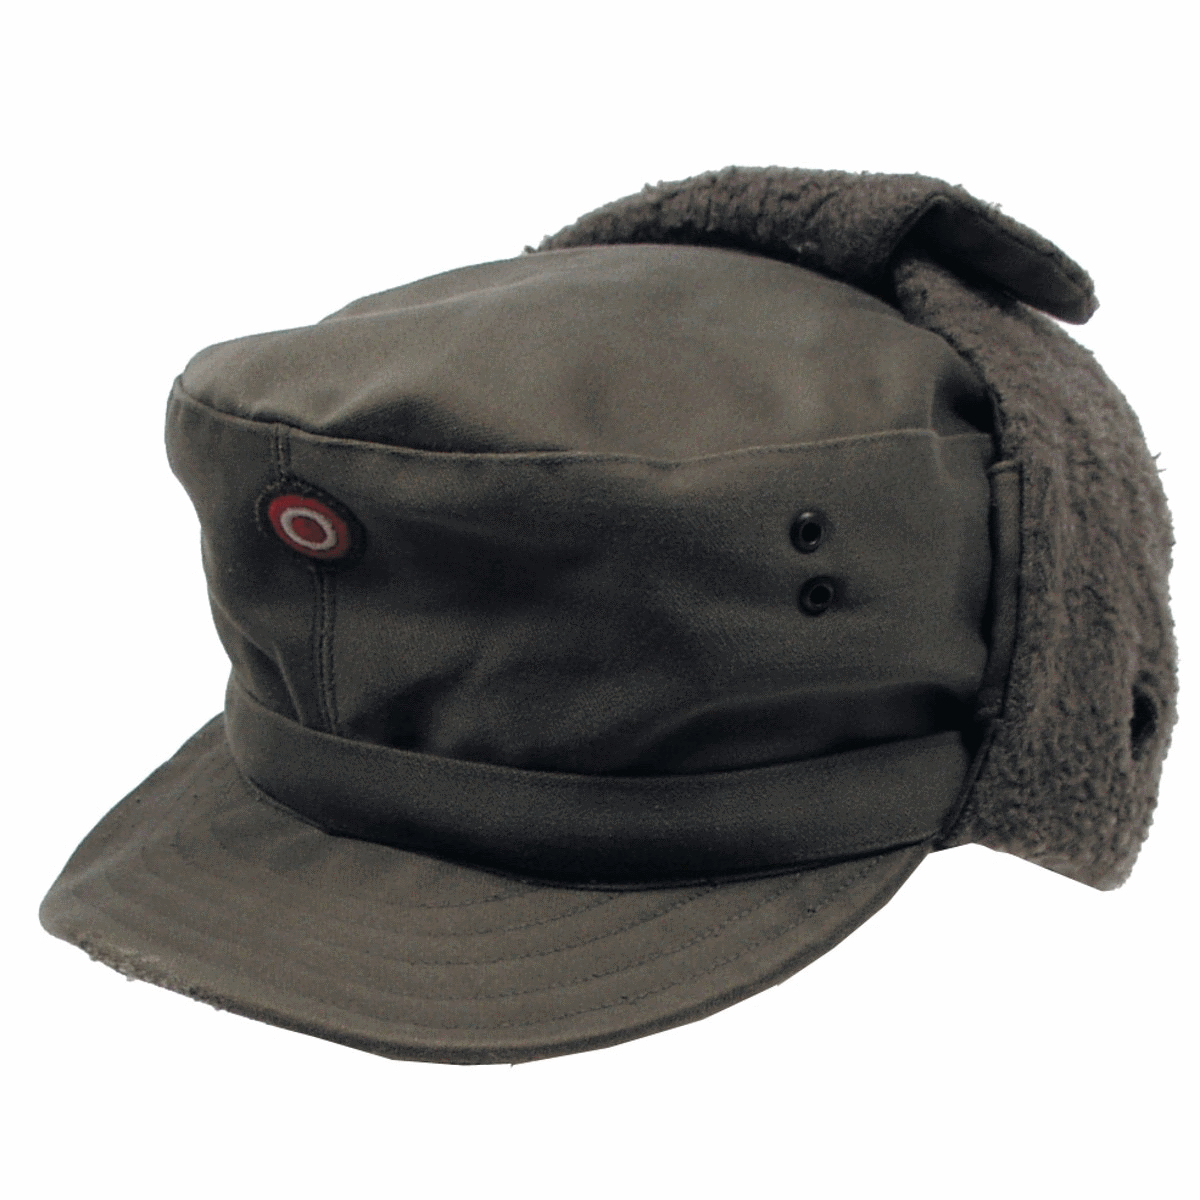 Details about Austrian army surplus winter cold weather cap with neck cover